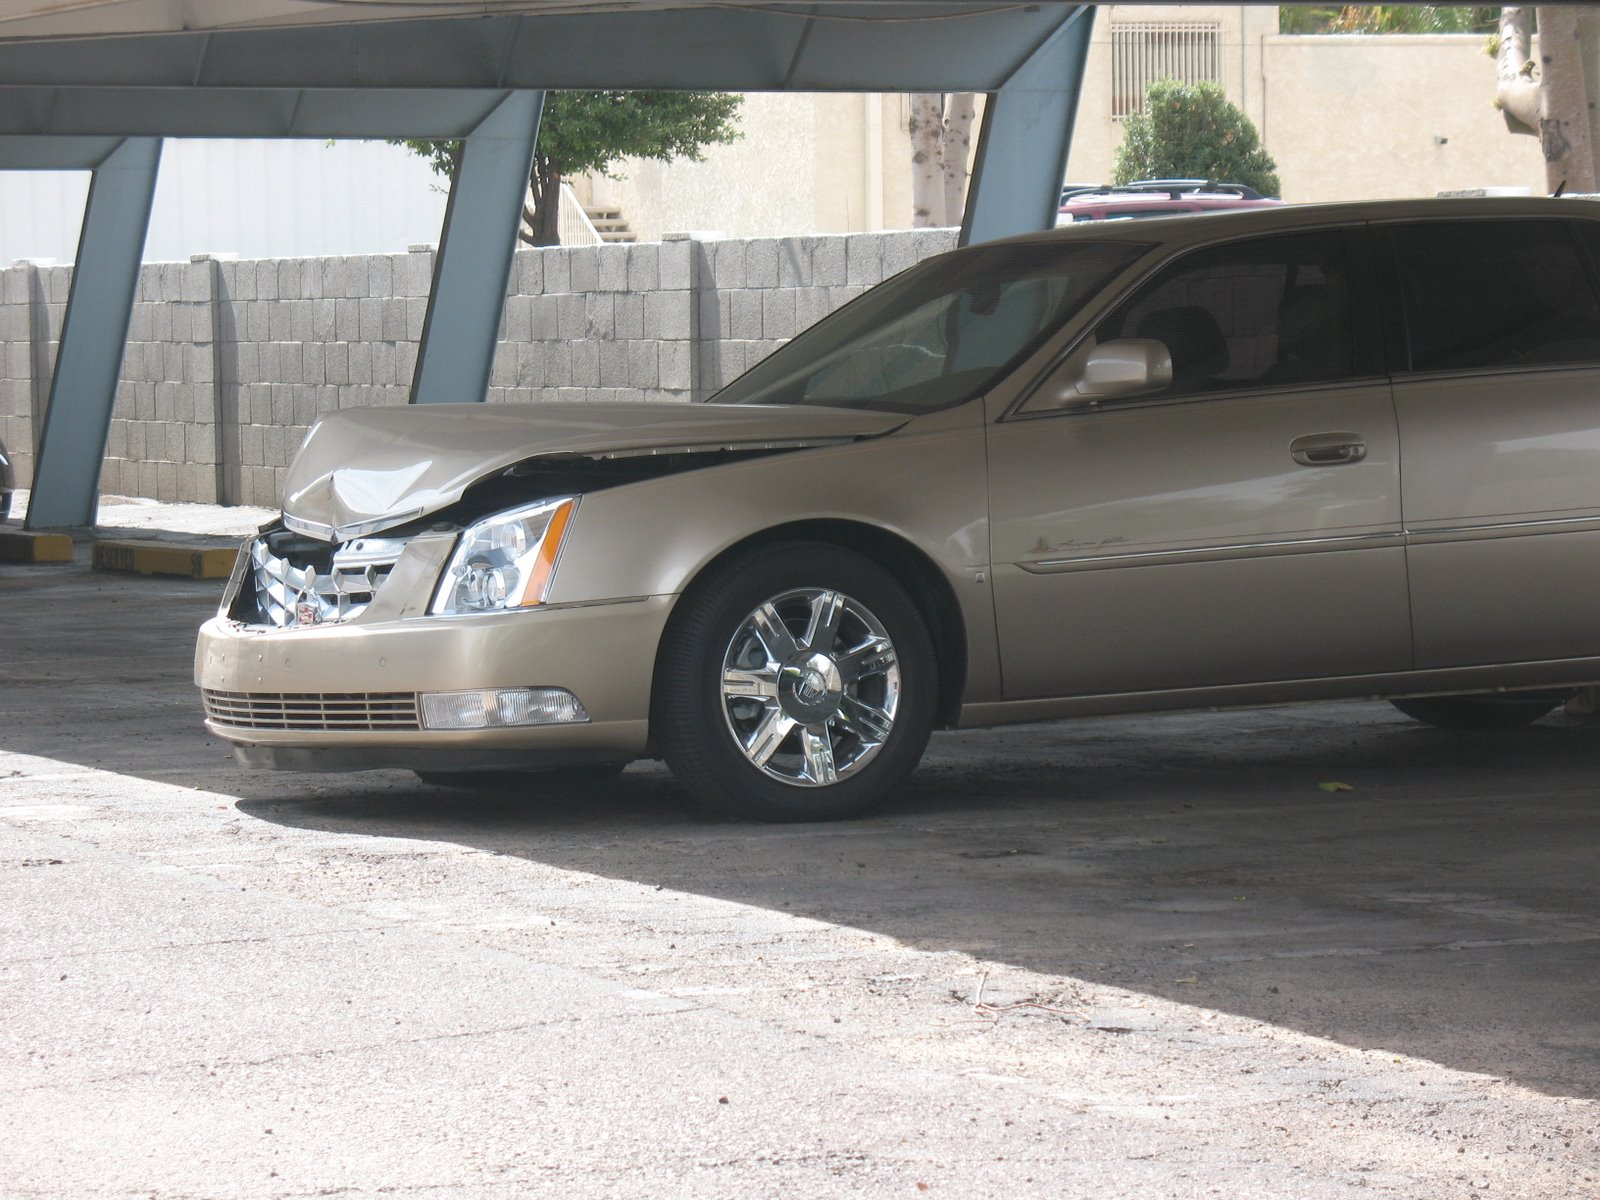 Cadillac DTS Crash